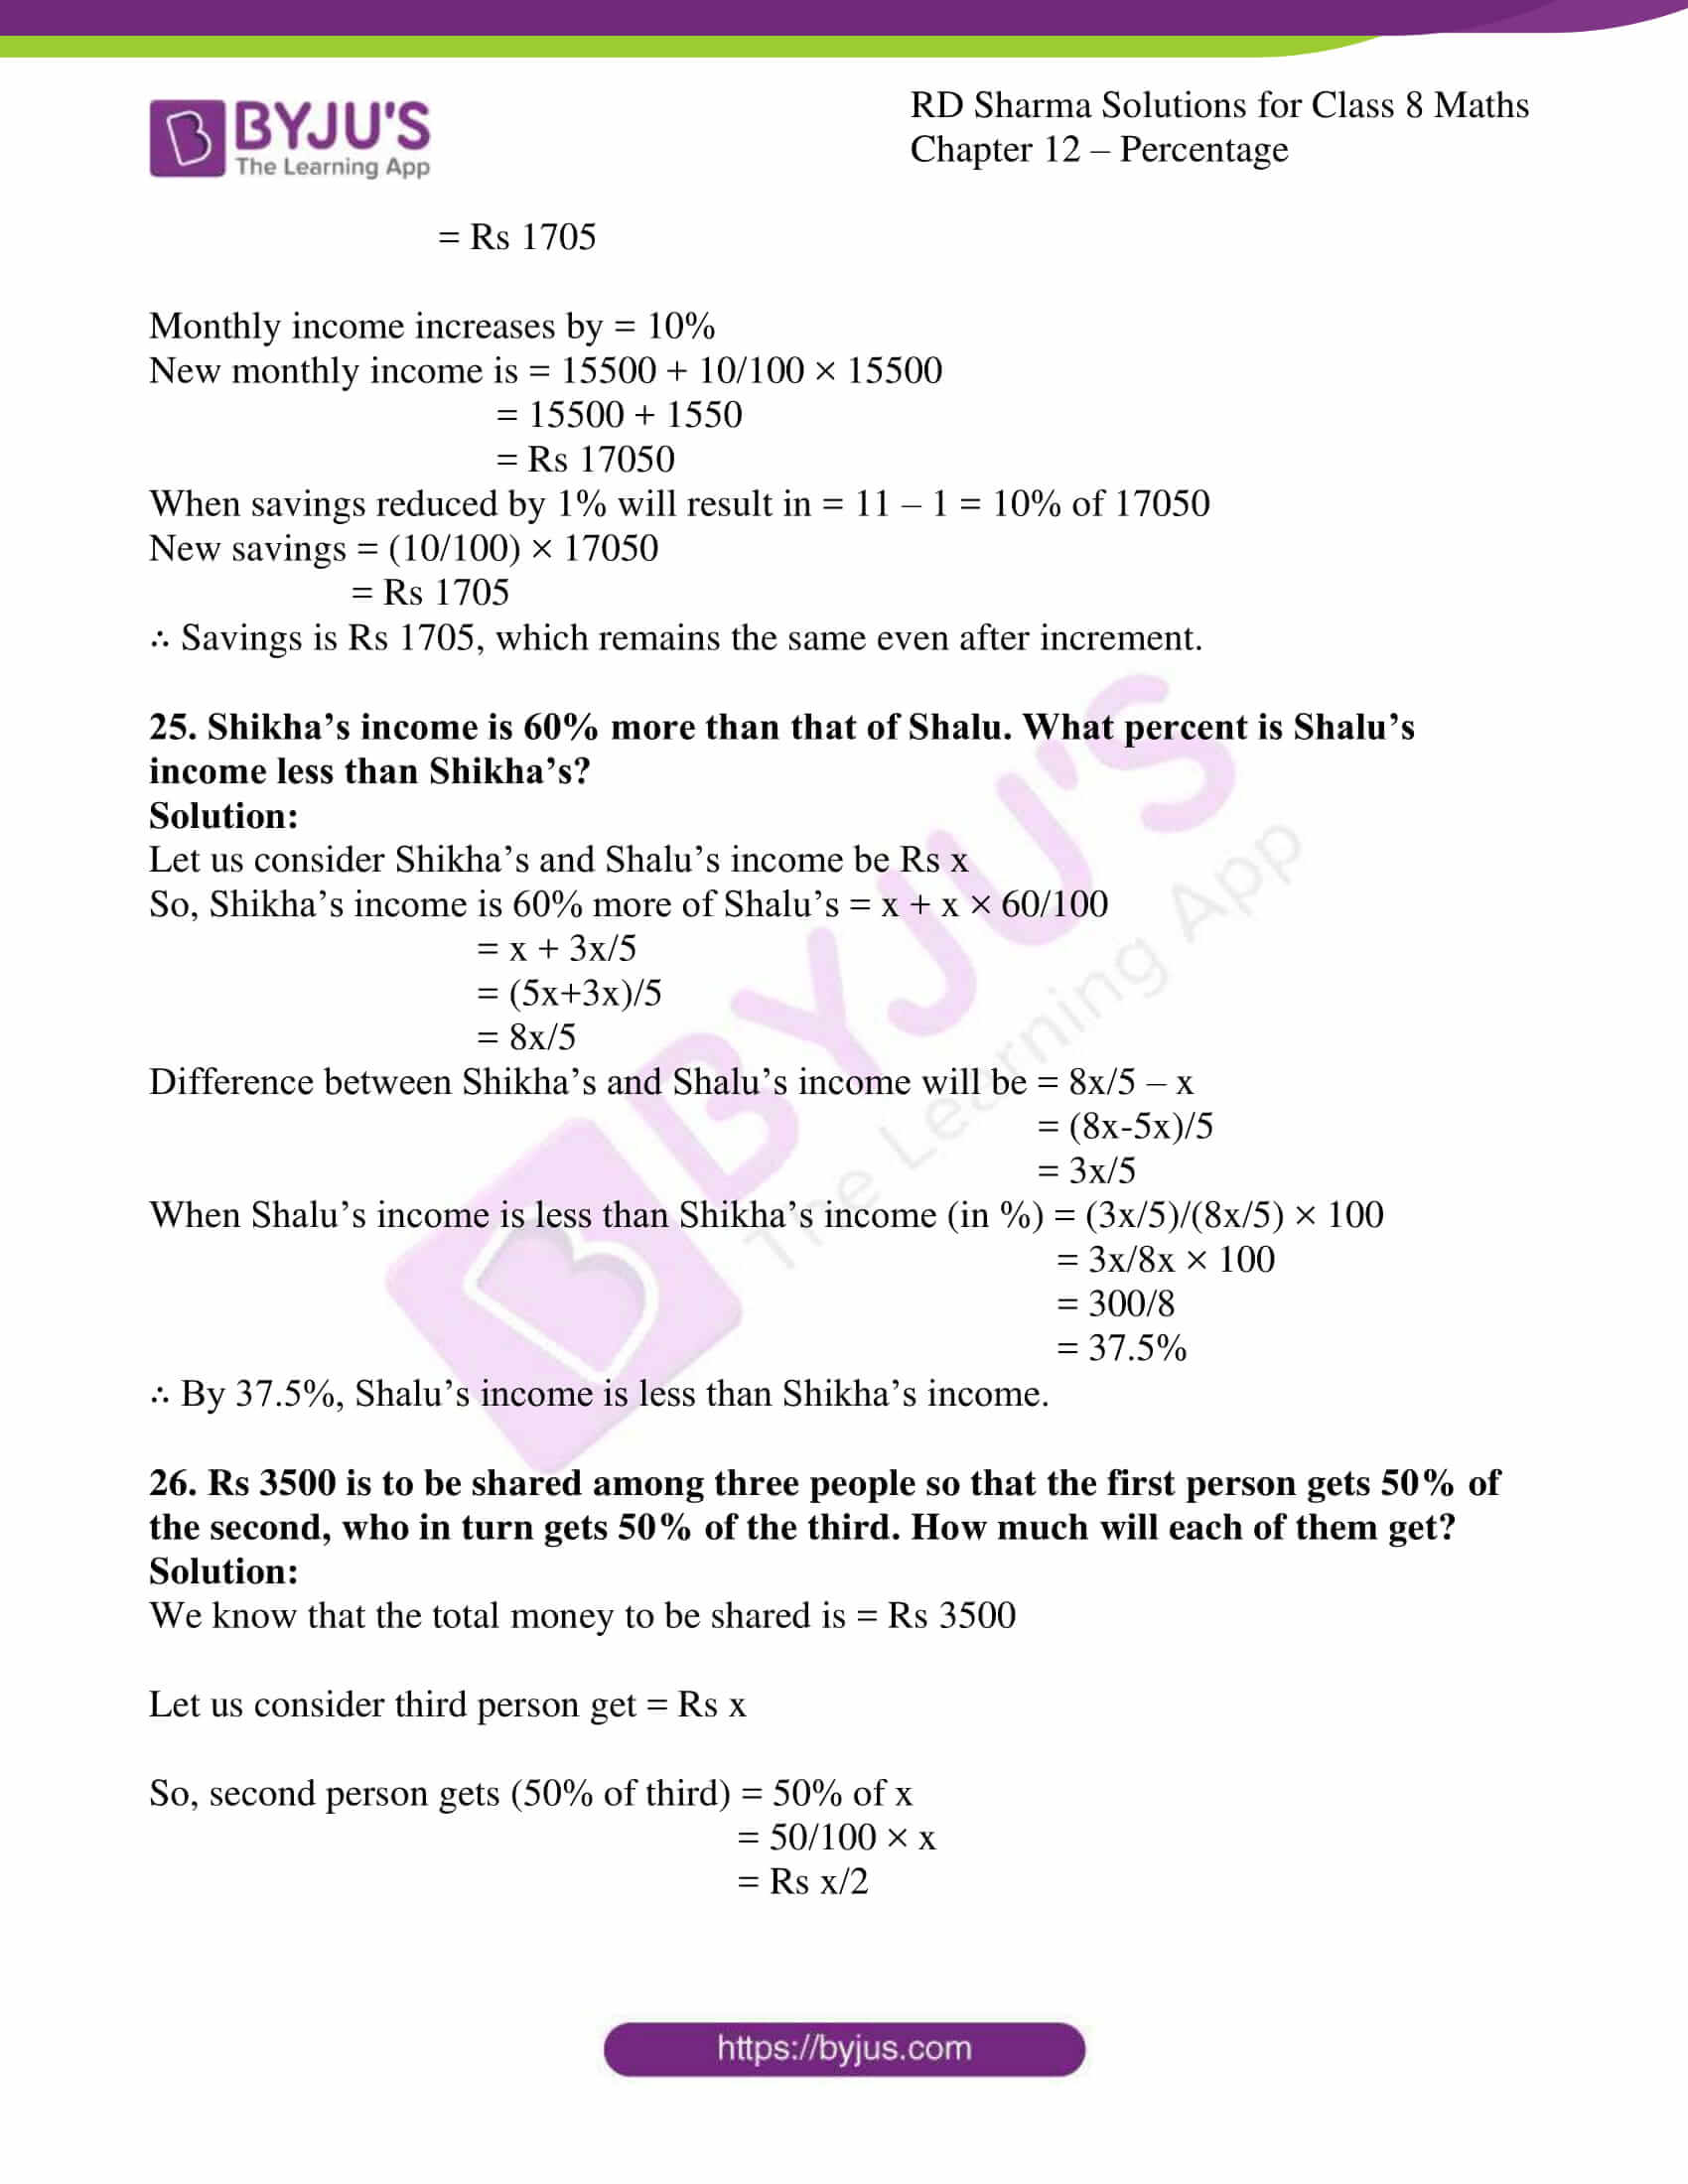 rd sharma class 8 maths chapter 12